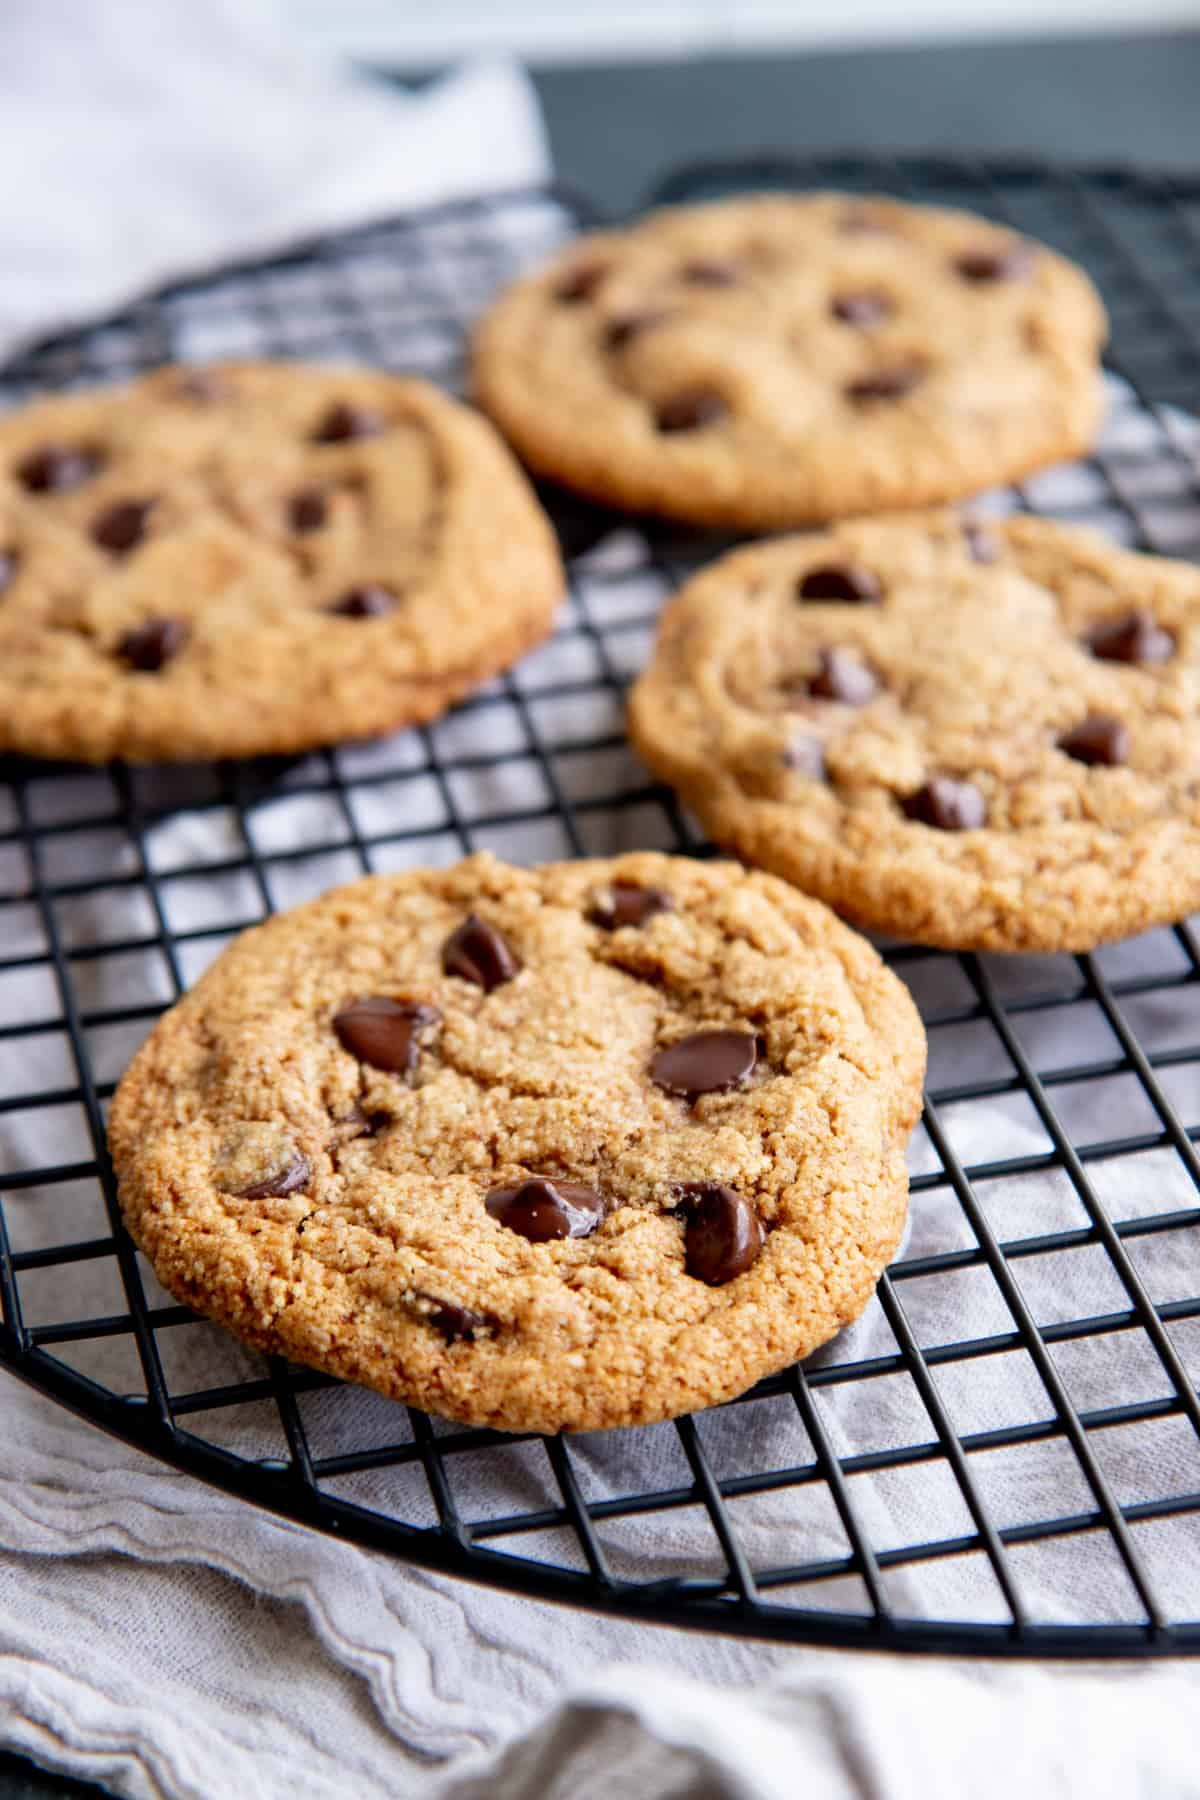 Almond flour chocolate chip cookies cool on a wire baking rack.